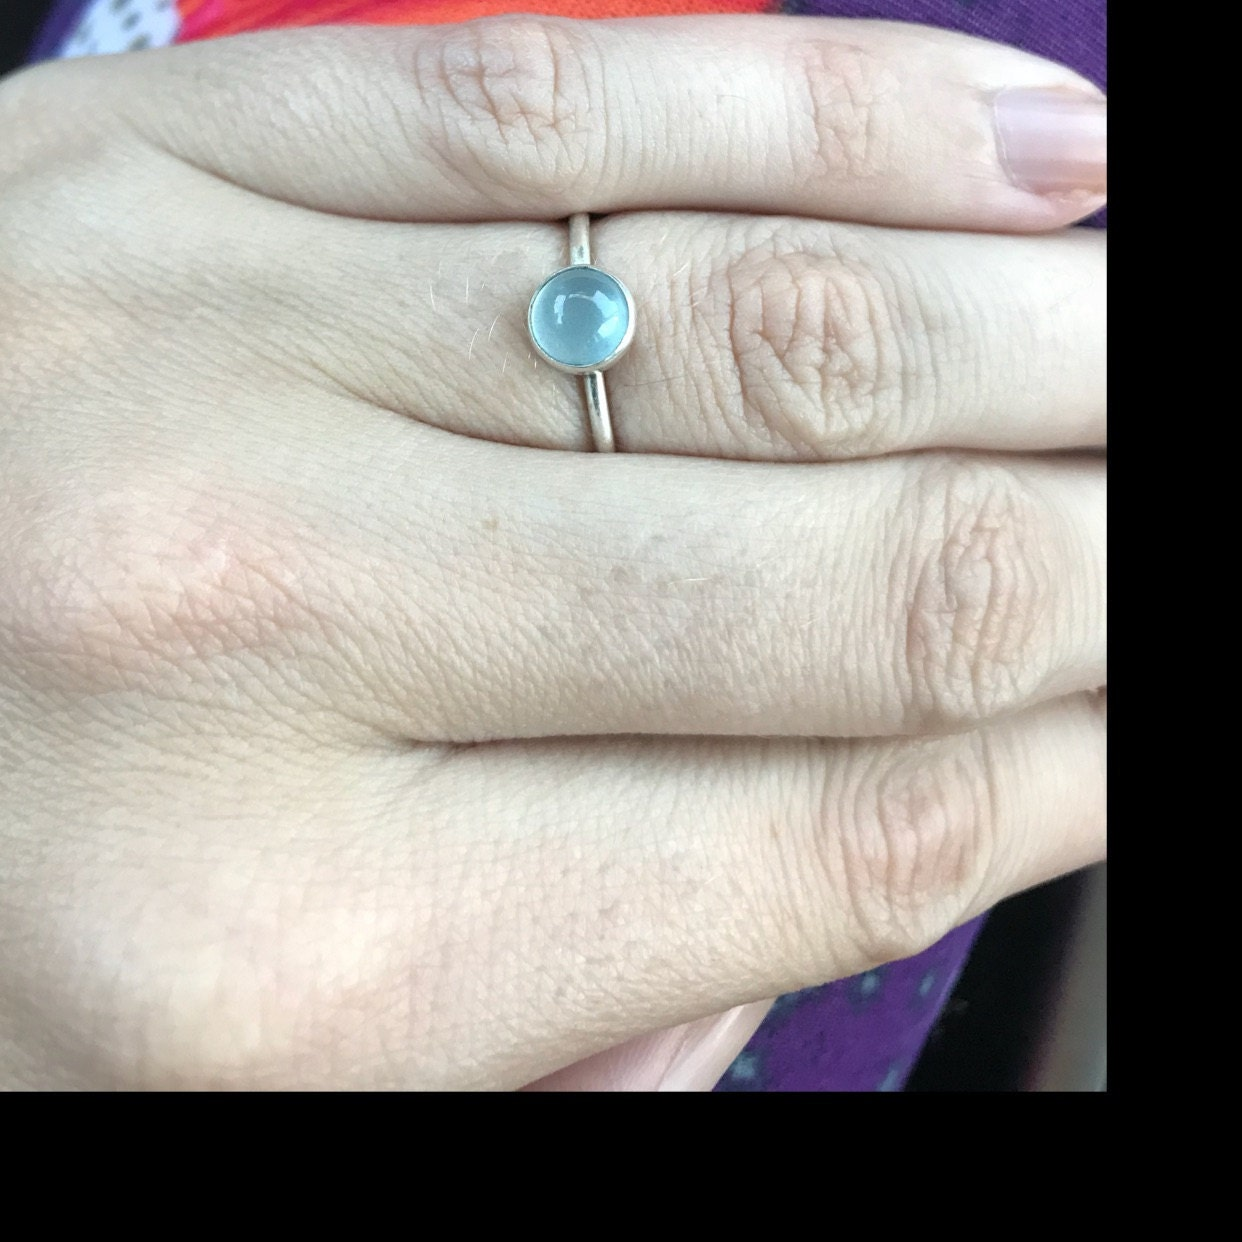 Amy Gentry added a photo of their purchase